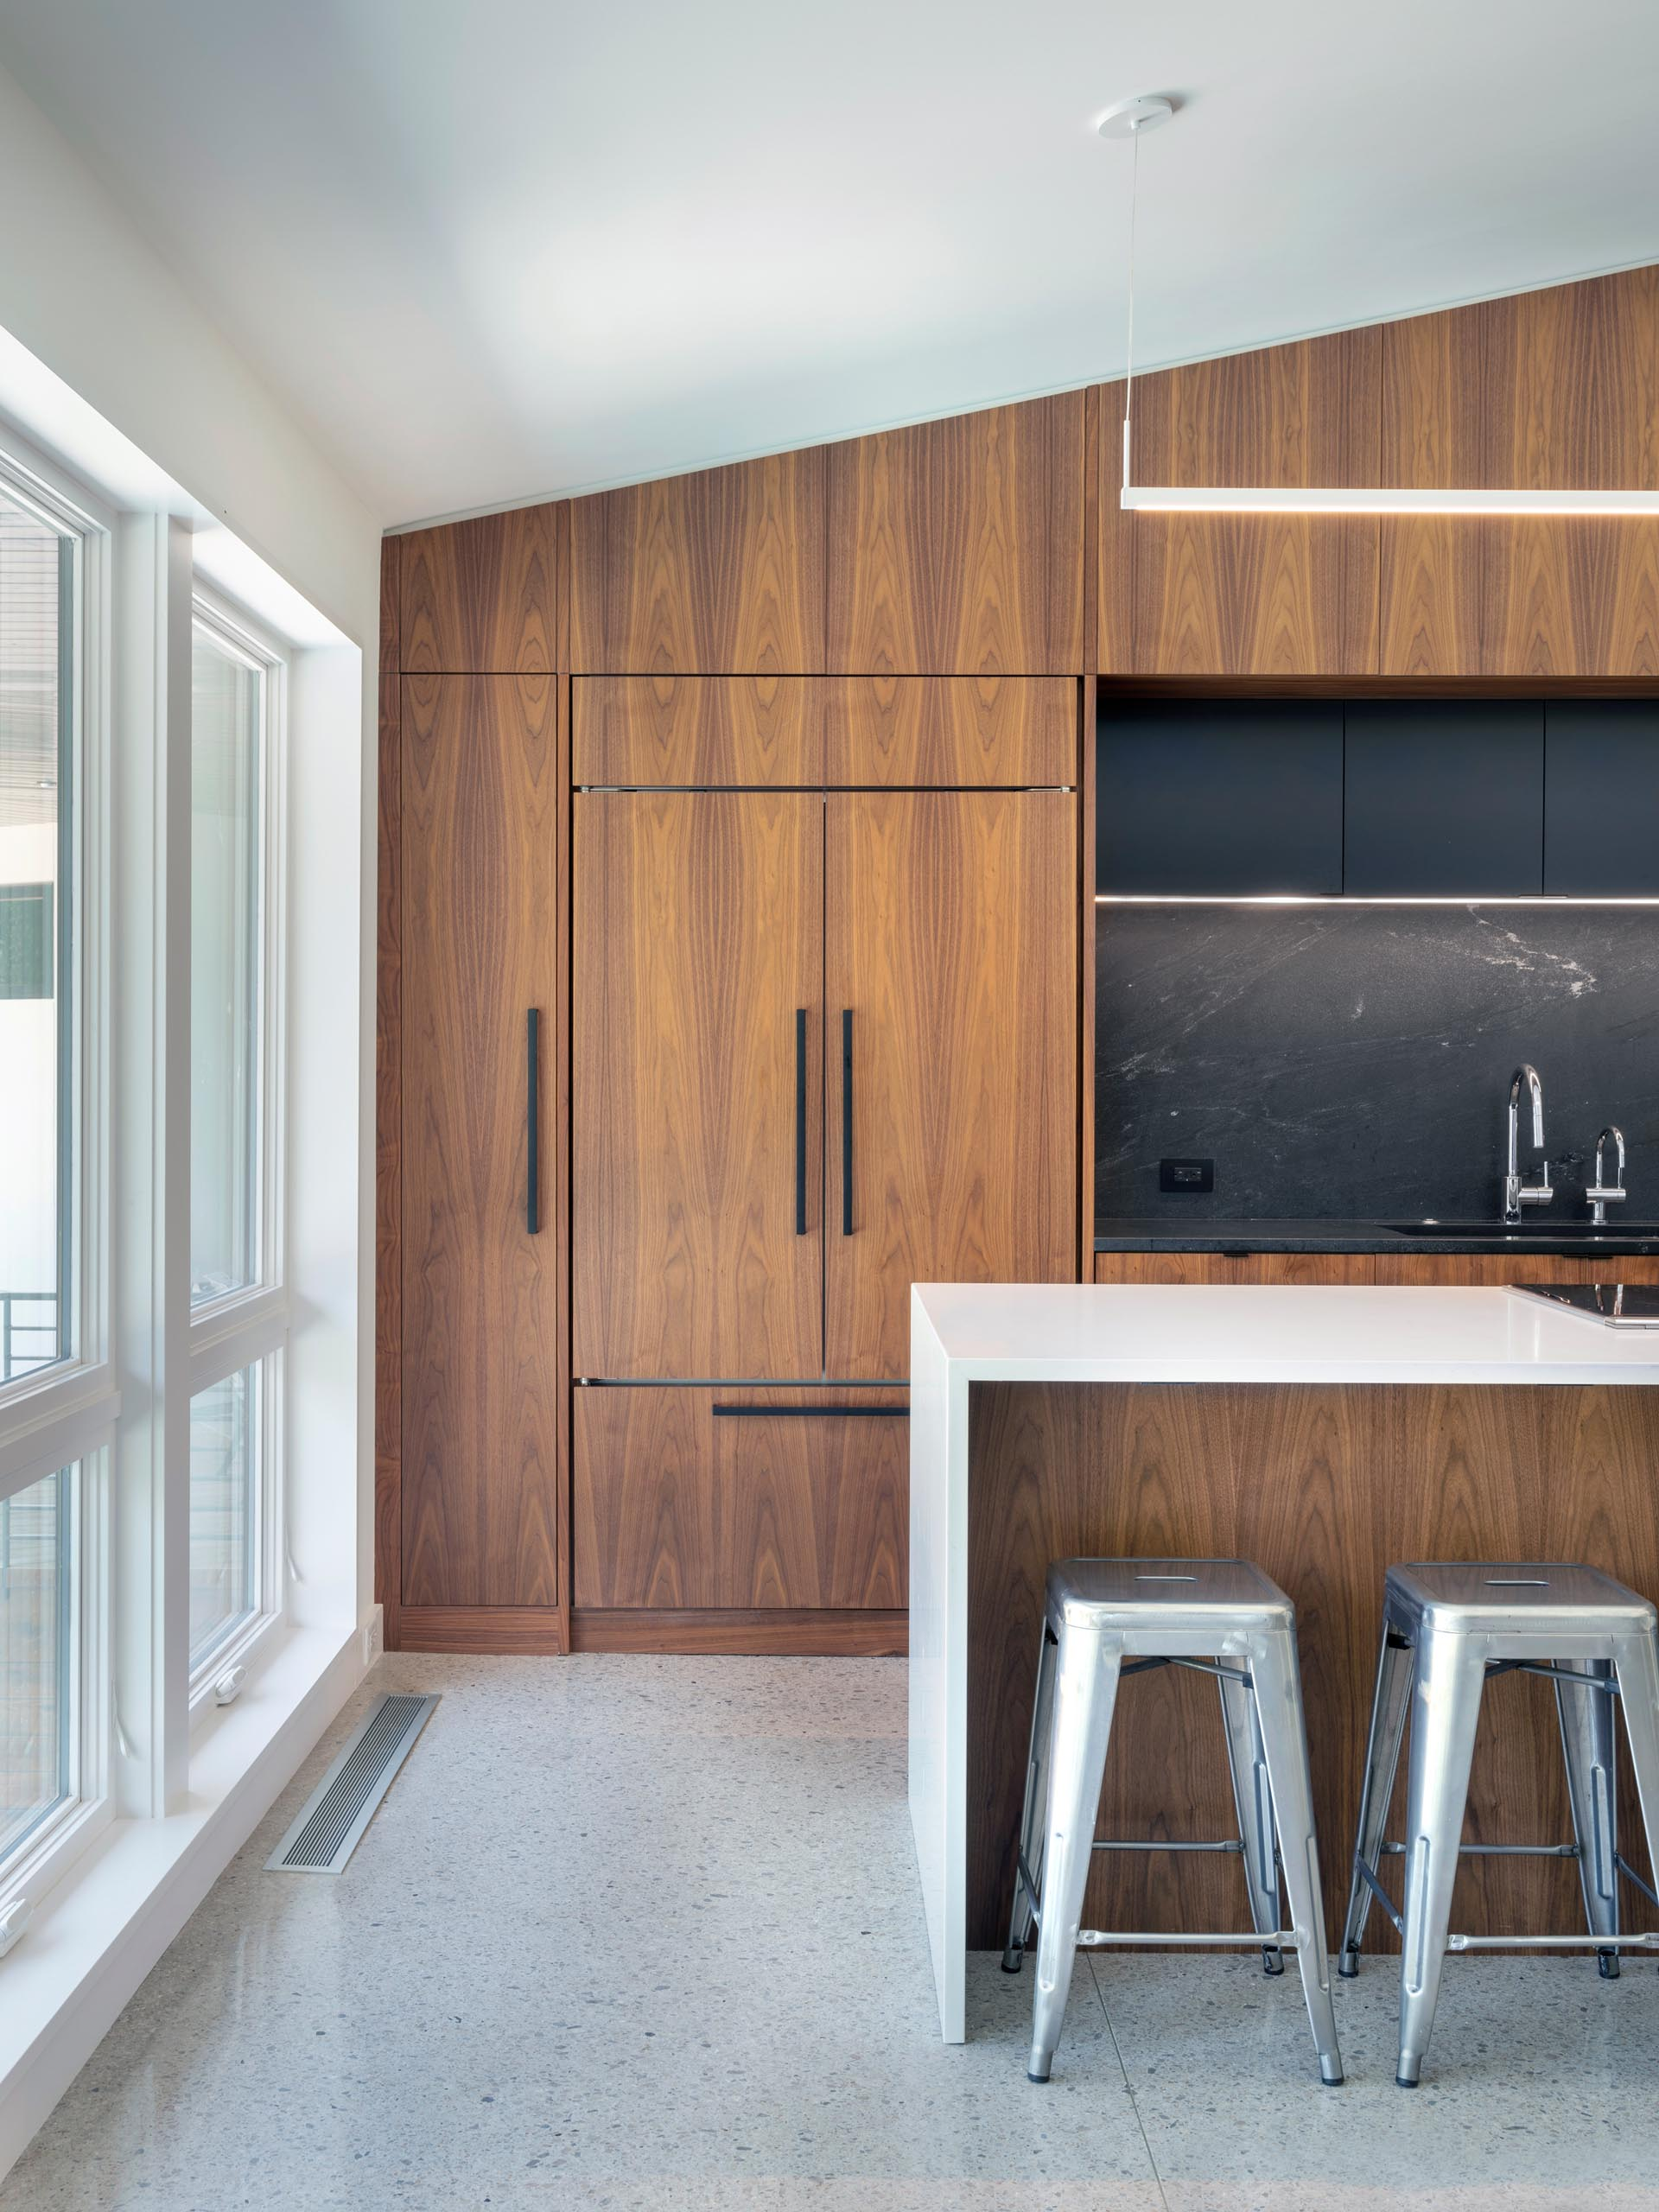 Modern wood kitchen with black backsplash and an island with a white waterfall countertop.